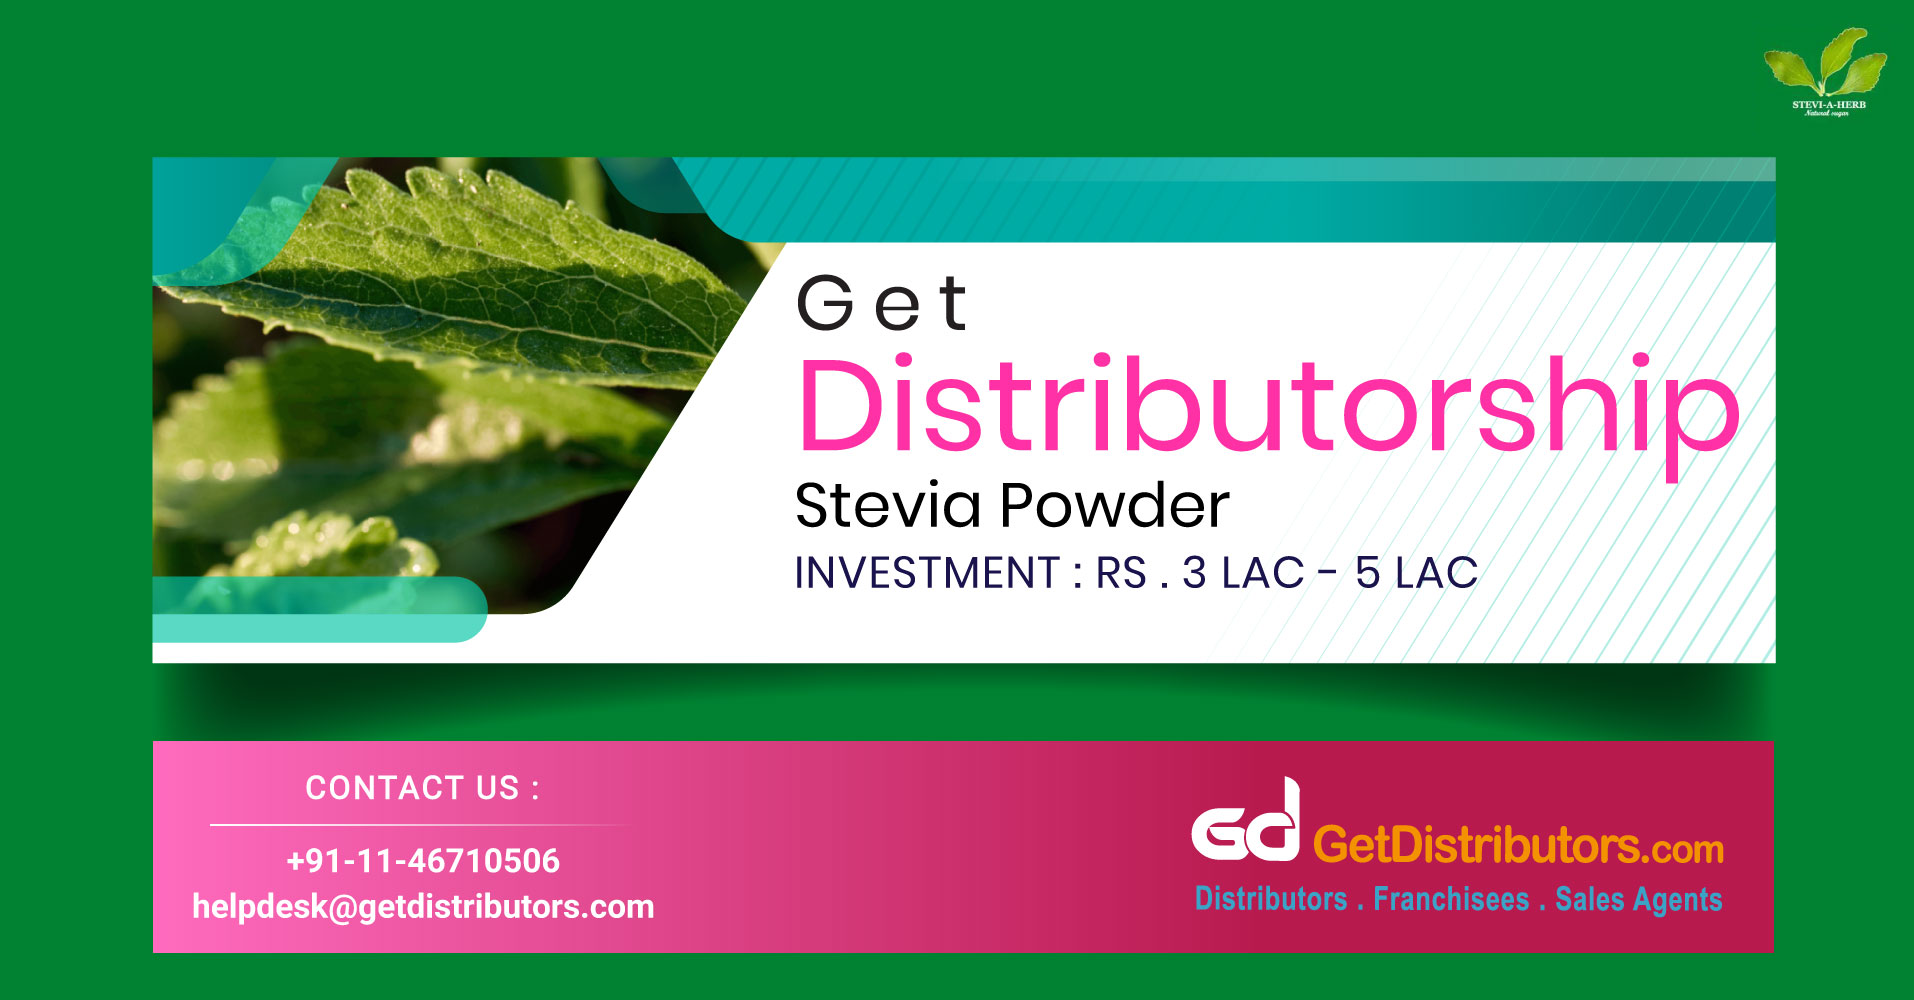 Genuine Stevia Powder Distributorship At Pocket-Friendly Prices